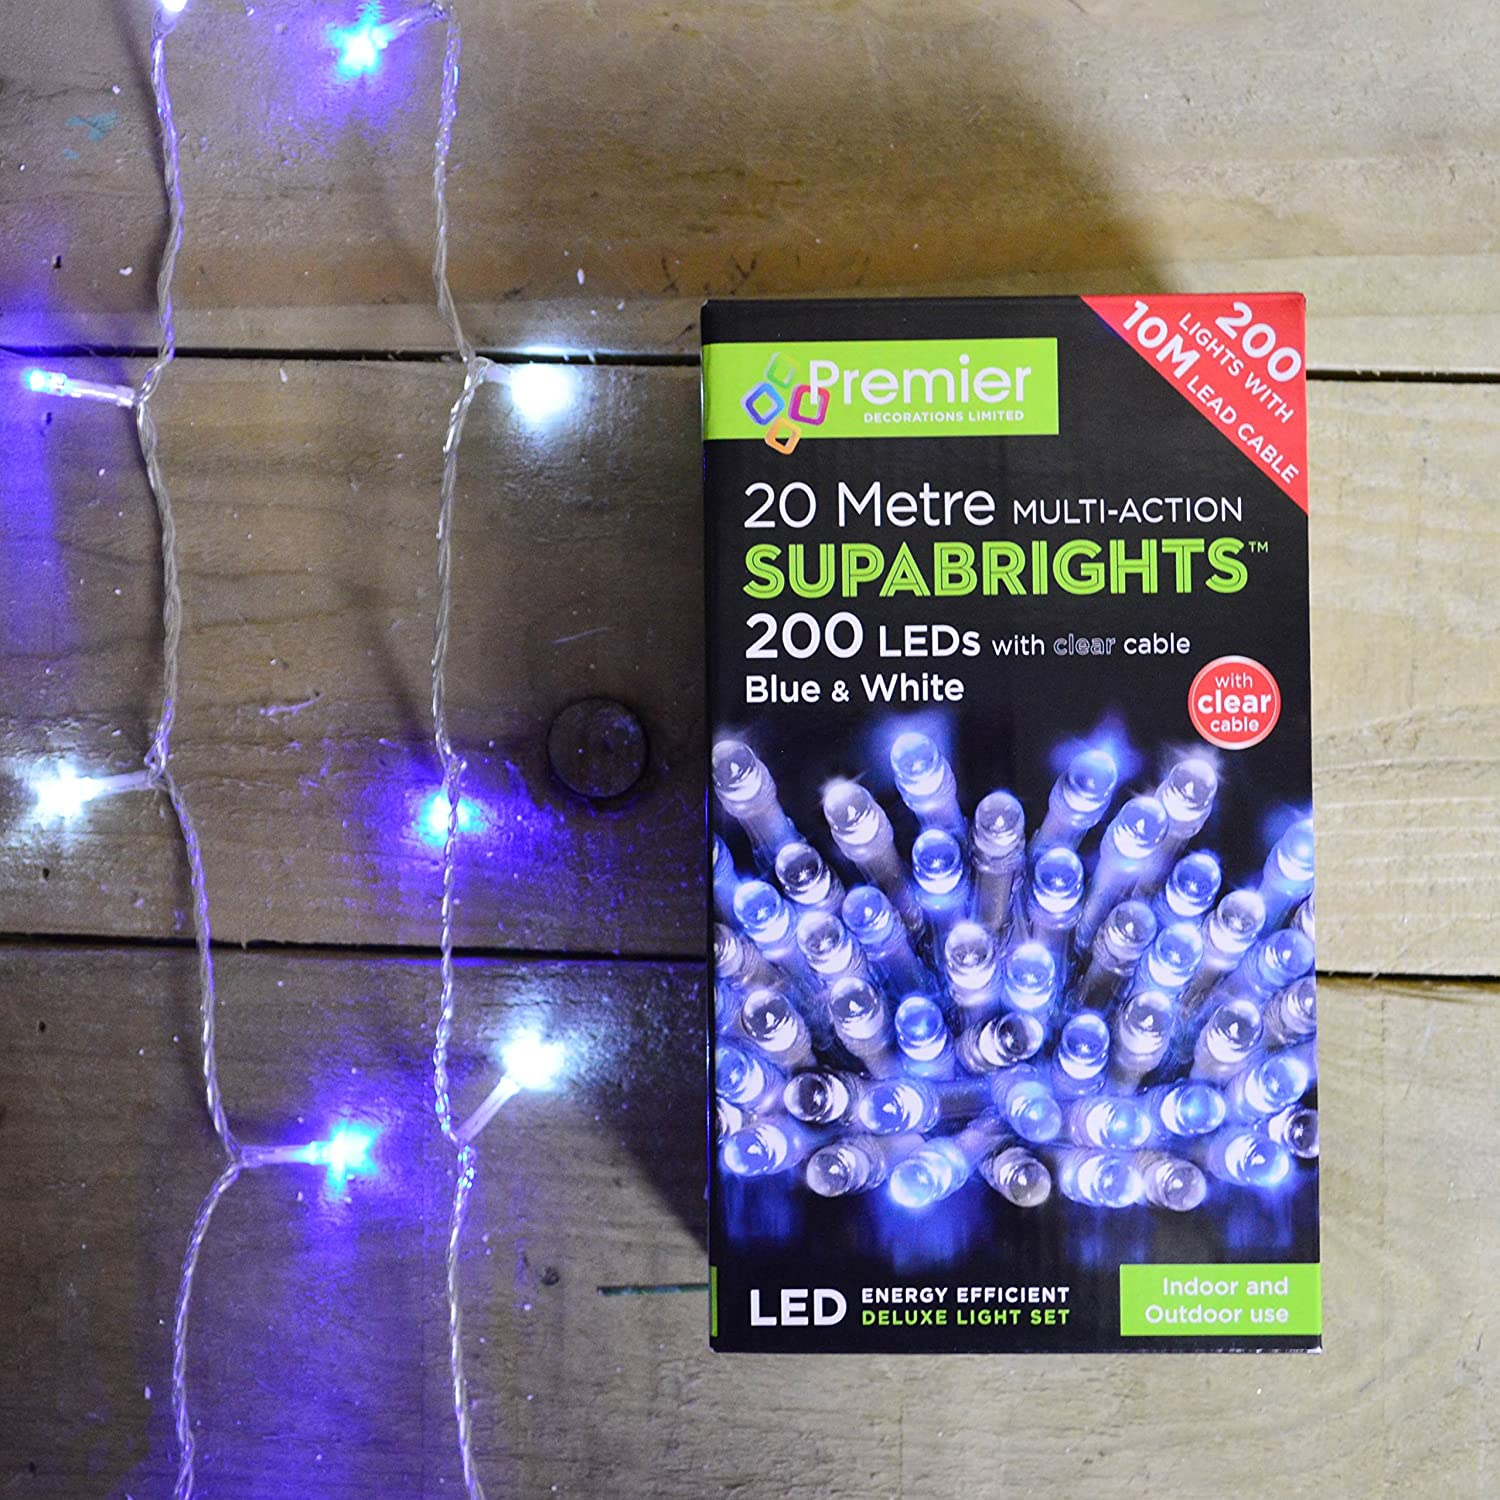 200 LED Multi-Action Supabrights Christmas Lights - Blue & White with Clear Cable Premier